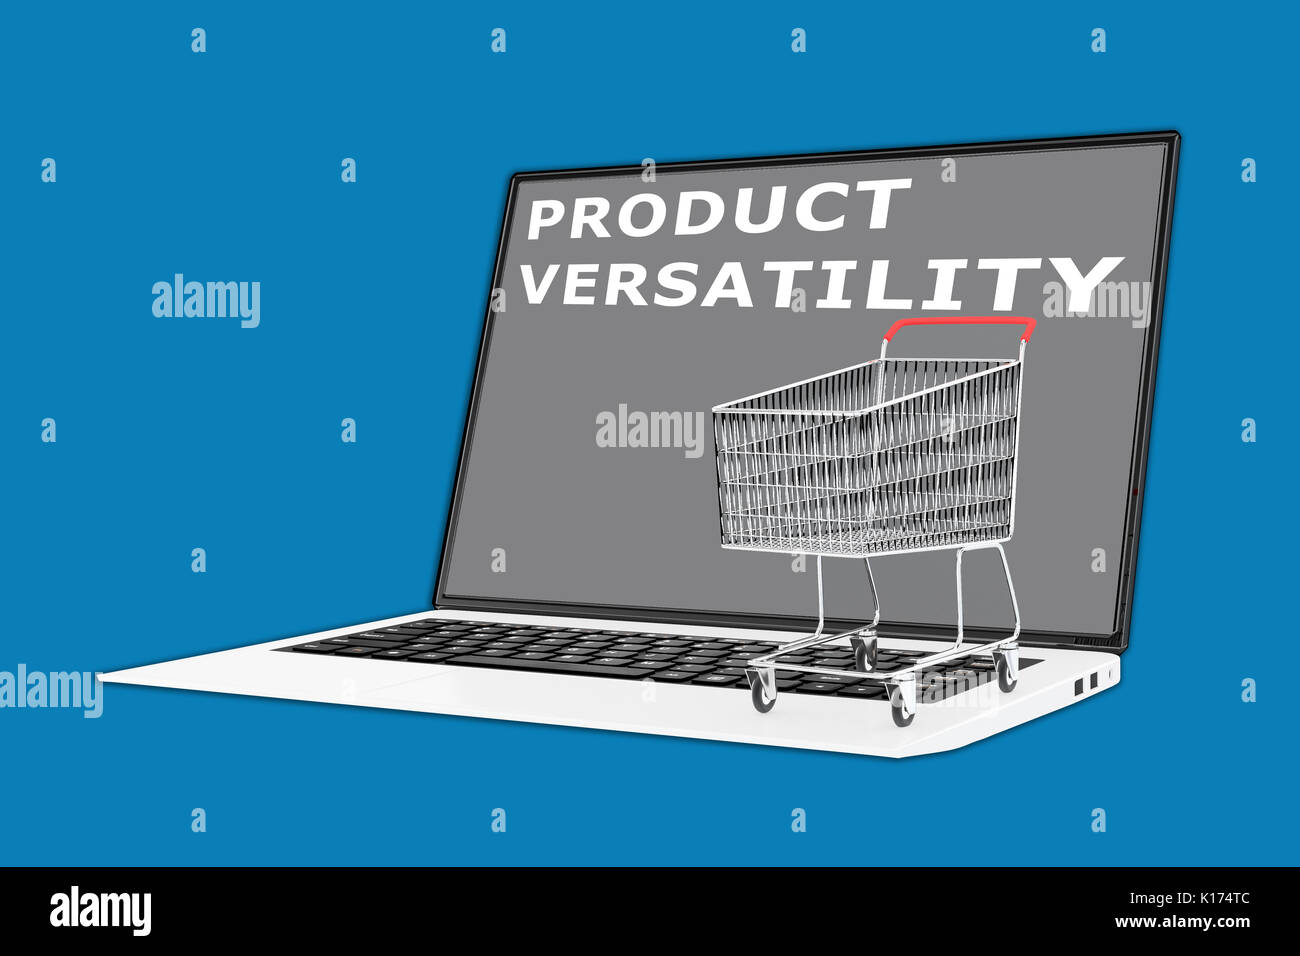 3D illustration of 'PRODUCT VERSATILITY' script with a supermarket cart placed on the keyboard - Stock Image